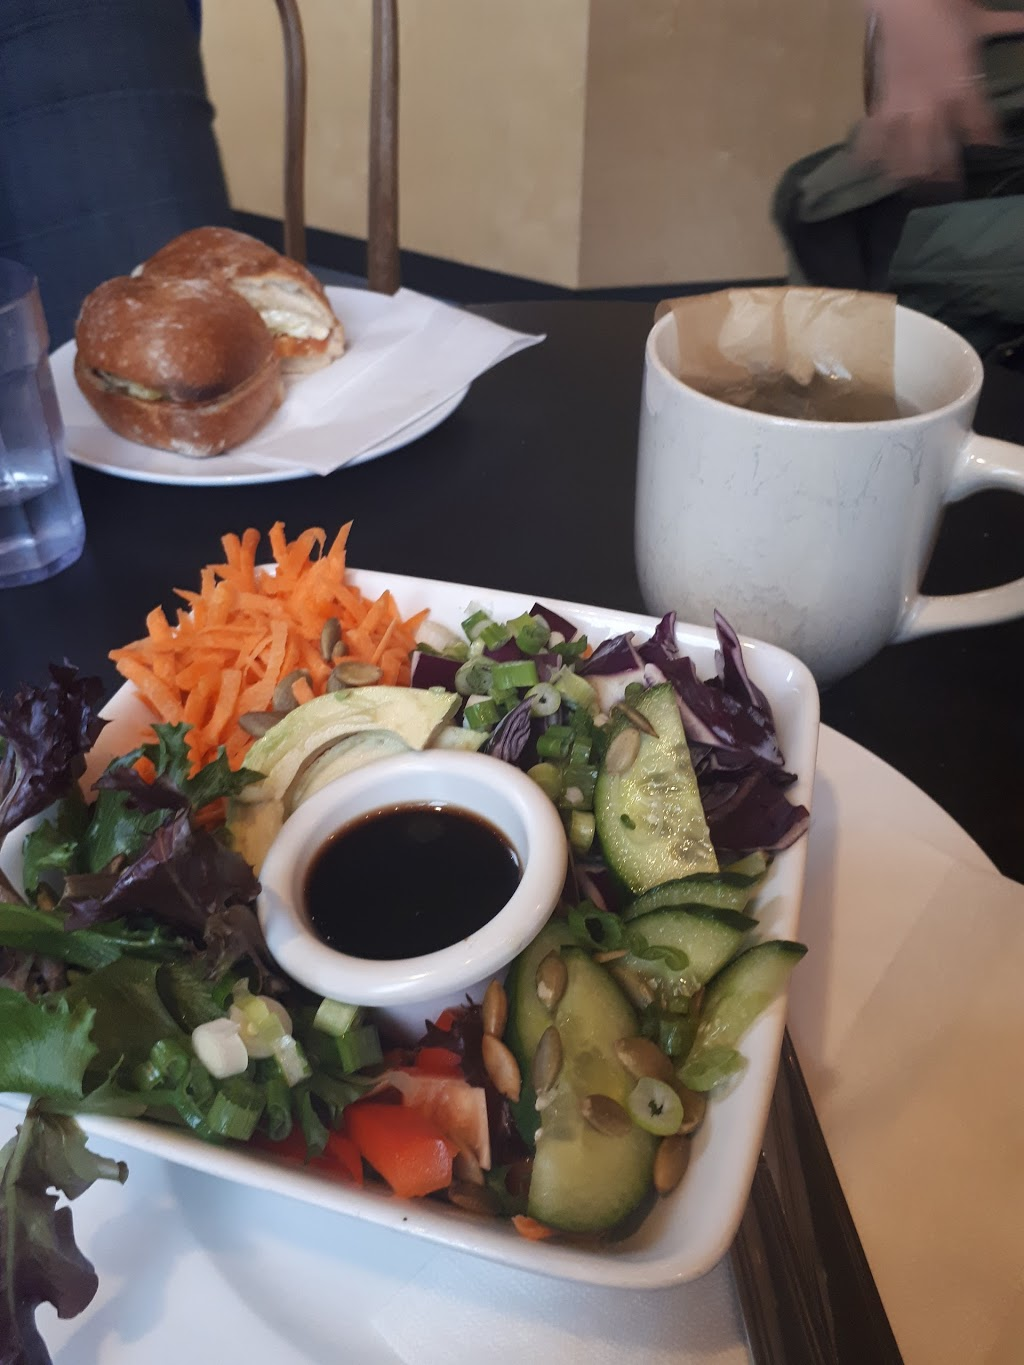 Grindstone Cafe | cafe | 504 Herald St, Victoria, BC V8W 1S6, Canada | 2504805222 OR +1 250-480-5222